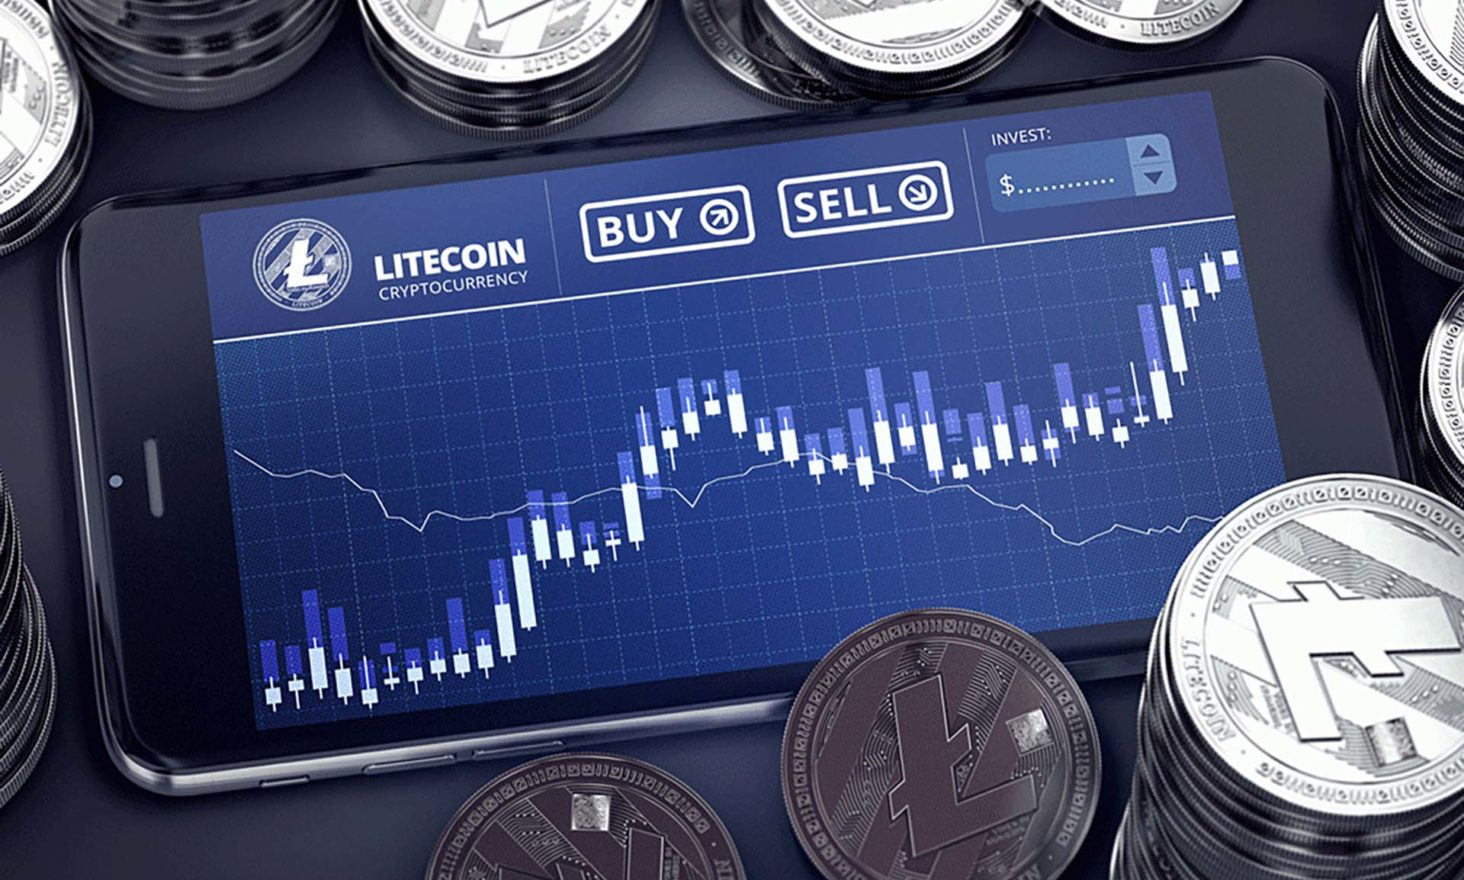 Litecoin Founder Lee: I Sold 100% Of My Litecoin Holdings